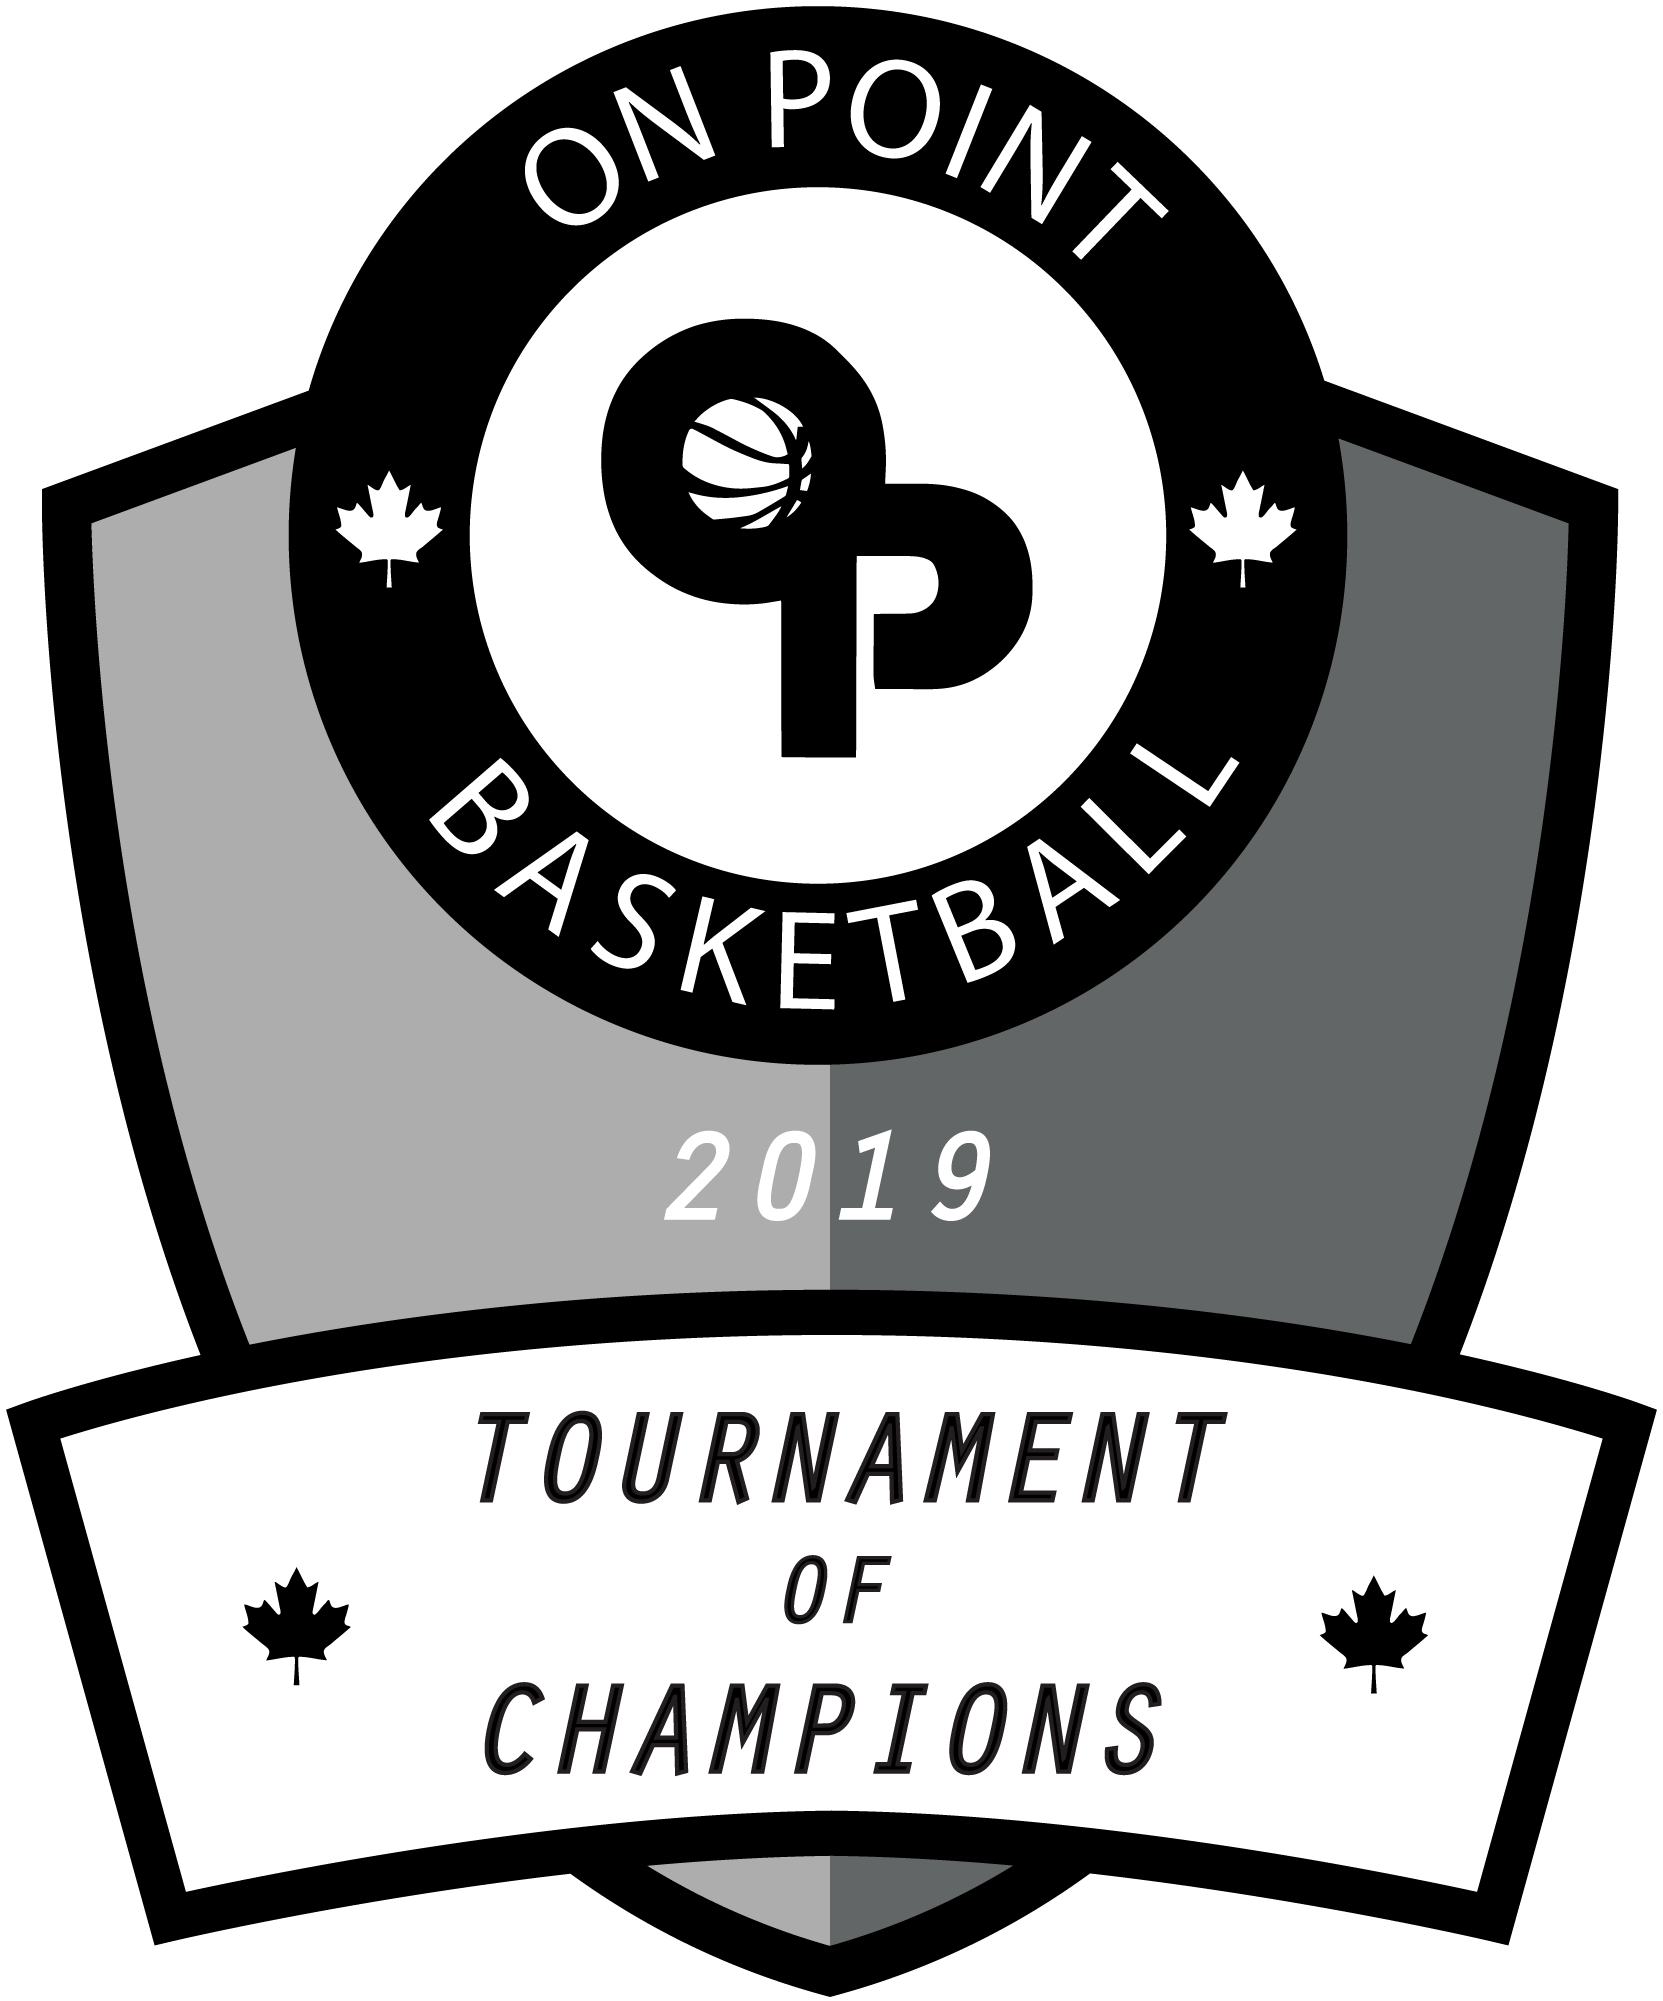 On Point Tournament of Champions July 19th-21st (Schedule/Results)